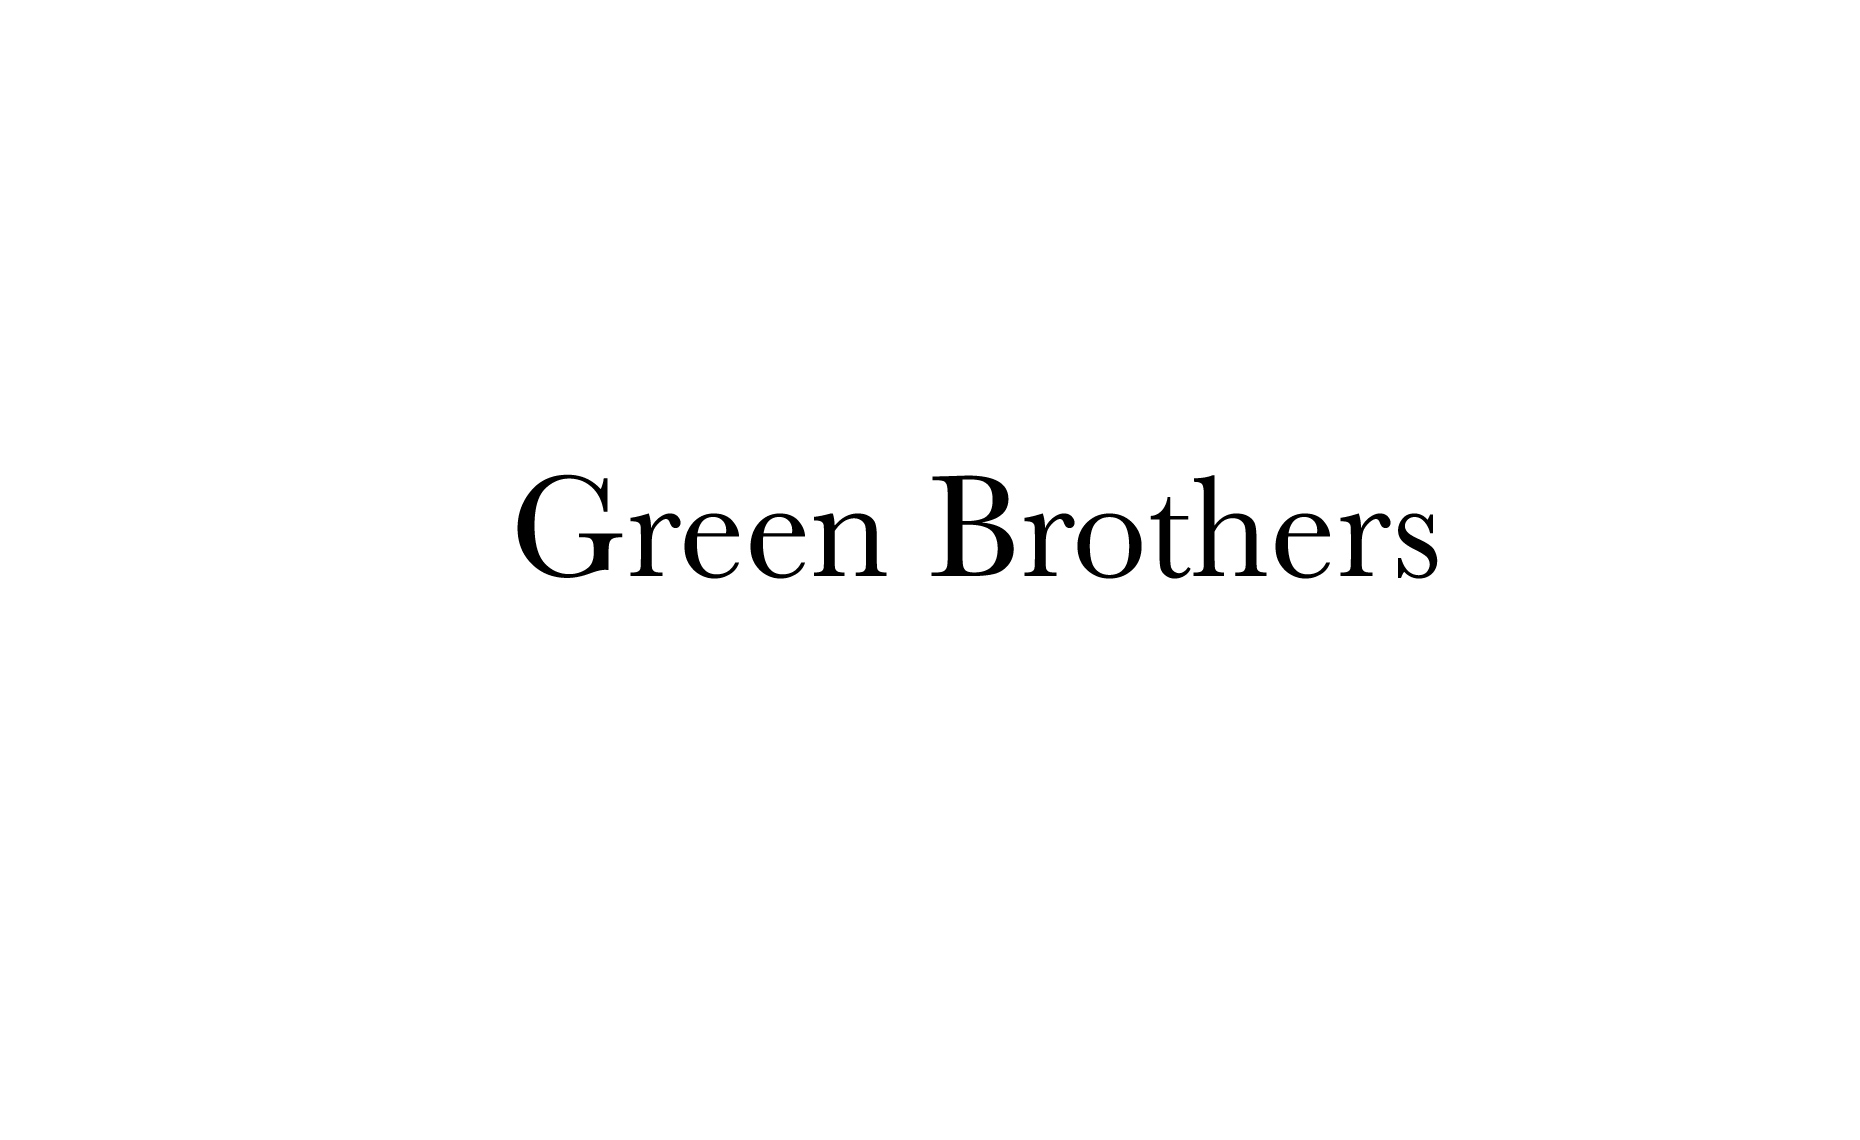 GreenBrothers